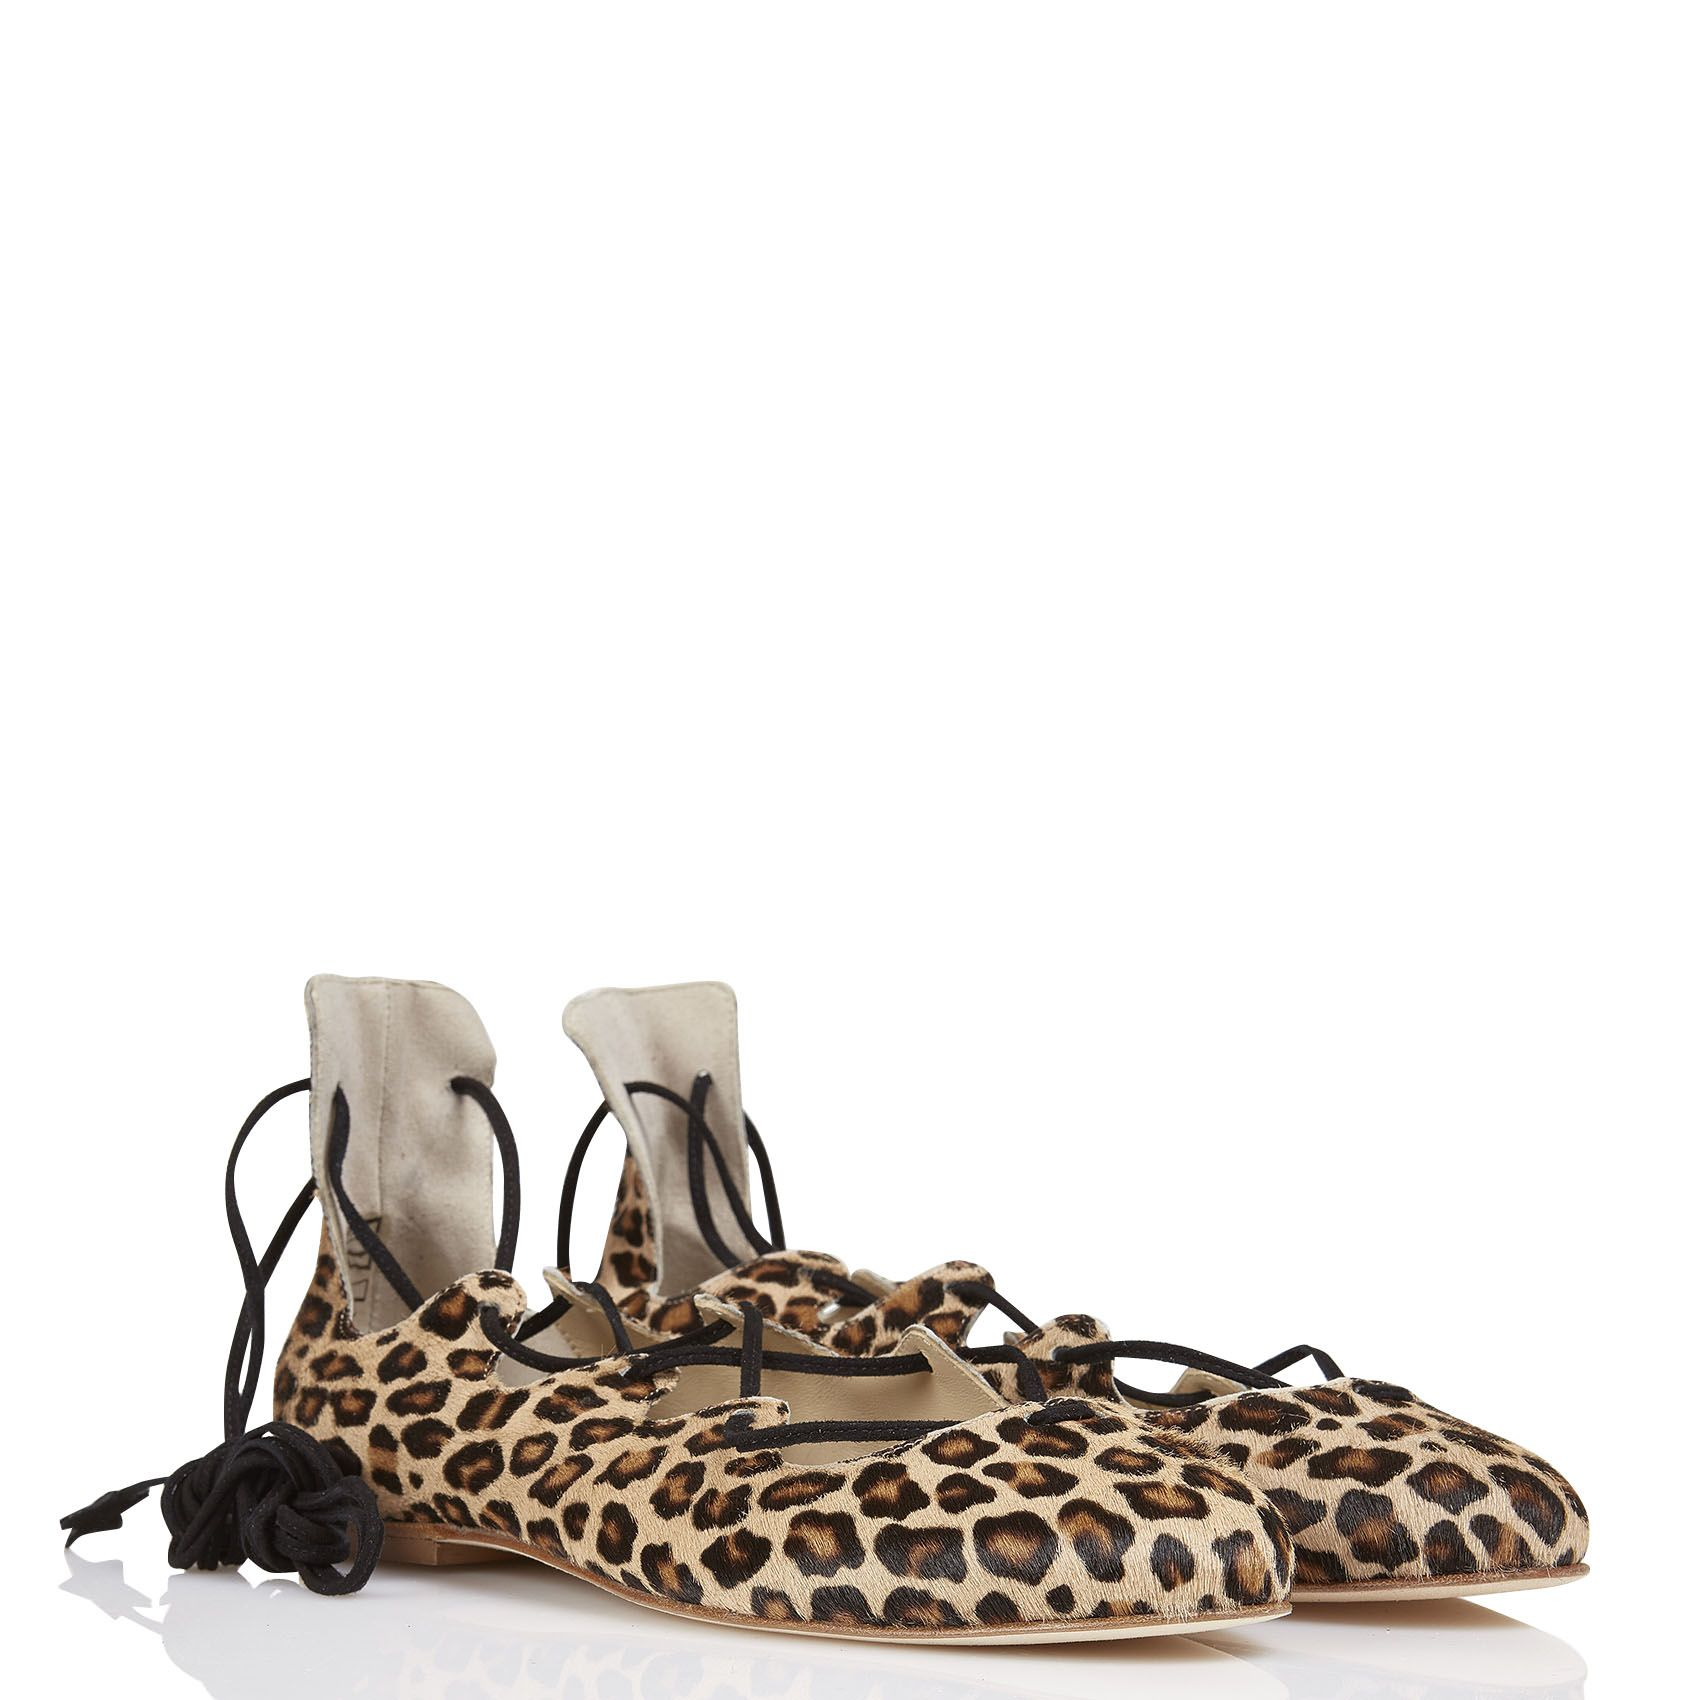 Sale - Leopard Lace-Up Flat Sandals - Anniel Anniel m52mPz